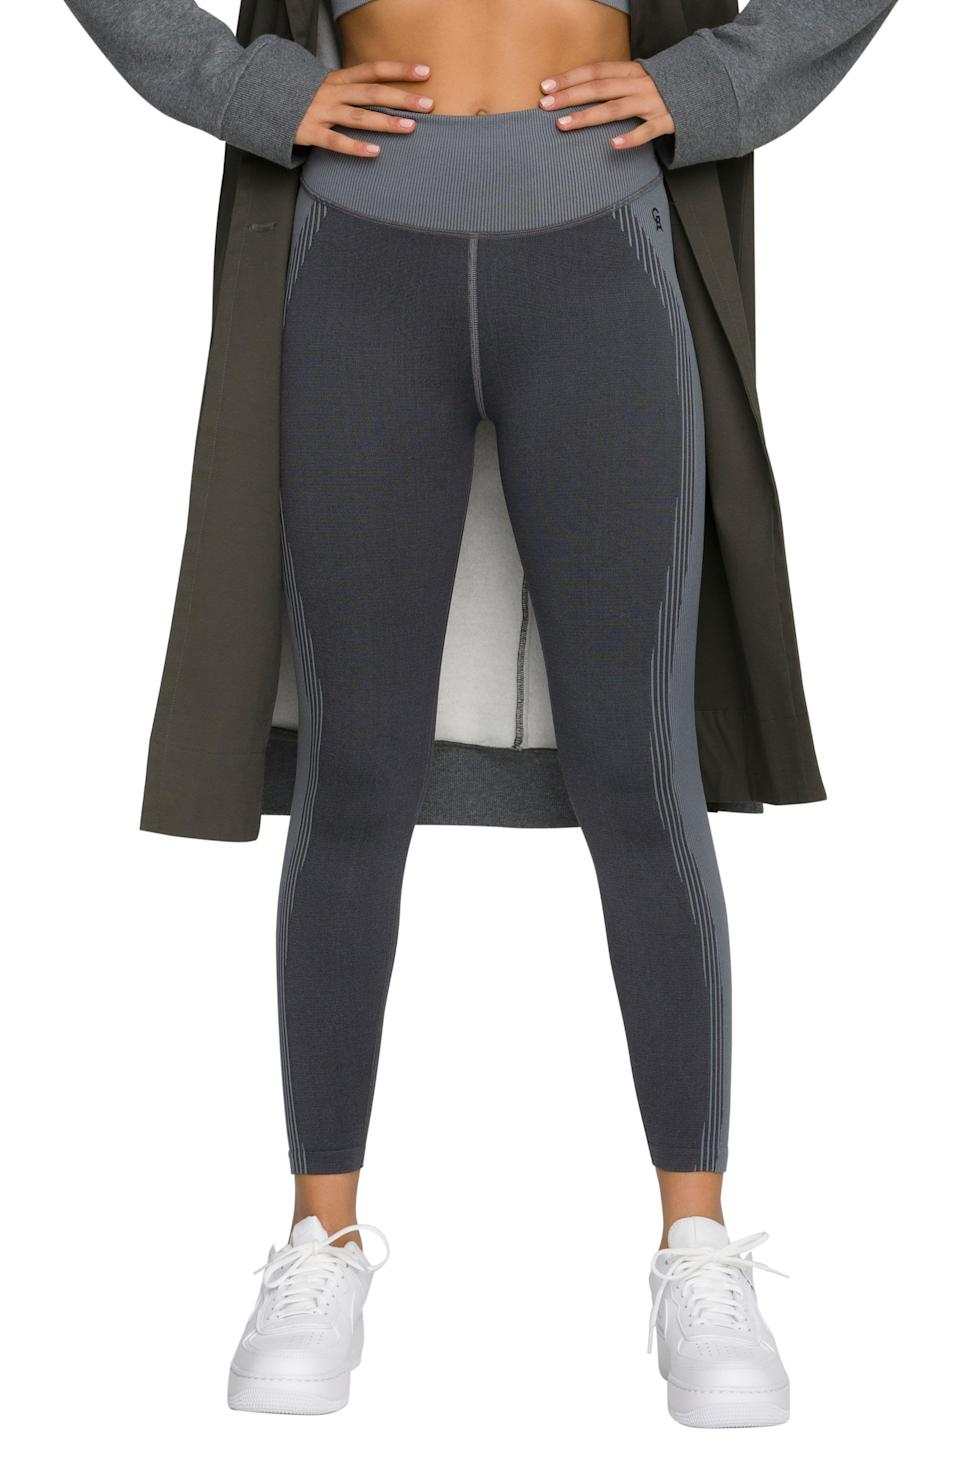 """<p><strong>GOOD AMERICAN</strong></p><p>nordstrom.com</p><p><strong>$47.40</strong></p><p><a href=""""https://go.redirectingat.com?id=74968X1596630&url=https%3A%2F%2Fwww.nordstrom.com%2Fs%2Fgood-american-contour-rib-seamless-leggings-regular-plus-size%2F6413373&sref=https%3A%2F%2Fwww.womenshealthmag.com%2Flife%2Fg36999215%2Fviral-tiktok-items-nordstrom-sale%2F"""" rel=""""nofollow noopener"""" target=""""_blank"""" data-ylk=""""slk:Shop Now"""" class=""""link rapid-noclick-resp"""">Shop Now</a></p><p>If you don't already own a pair of these butt-lifting leggings, you'll definitely recognize them from all the videos they've been in. Hundreds of thousands of TikTokers participated in a challenge filming their partners' live reaction to these for the first time. Needless to say, they were hilarious (and sexy!).</p><p>You can never have too many leggings, and these ones strategically designed to highlight your booty are a must.</p>"""